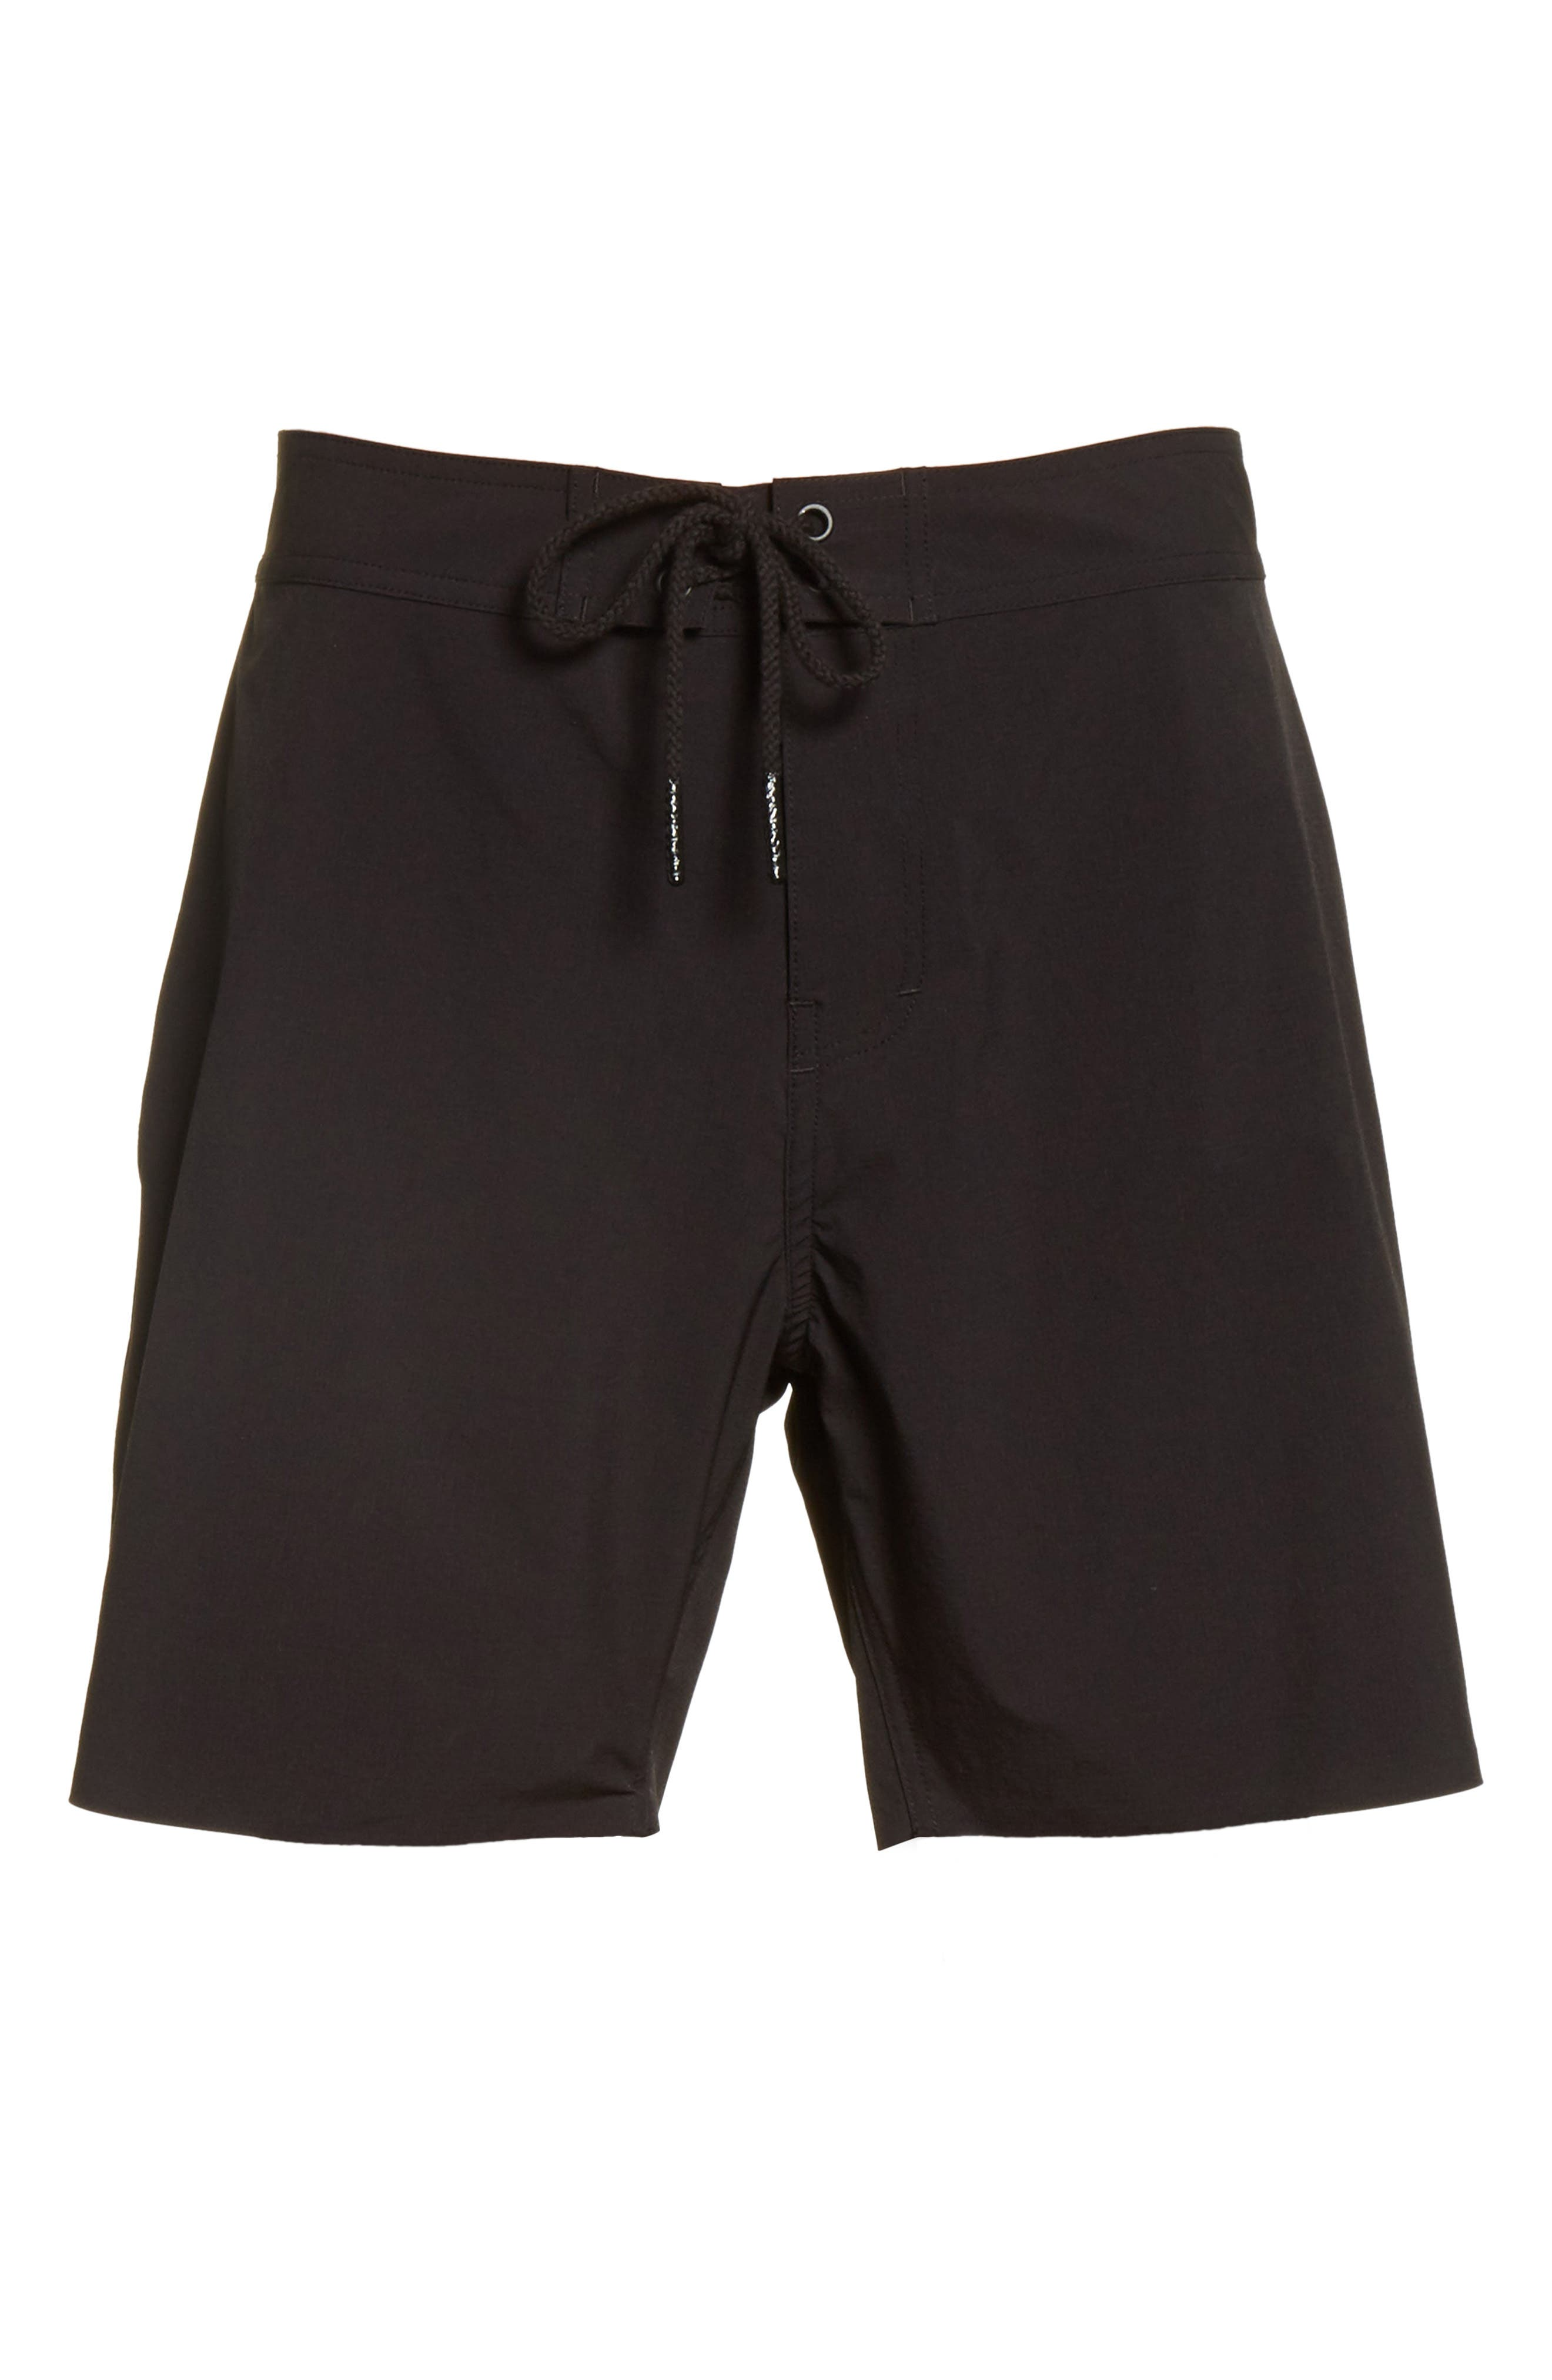 Danny Board Shorts,                             Alternate thumbnail 6, color,                             001